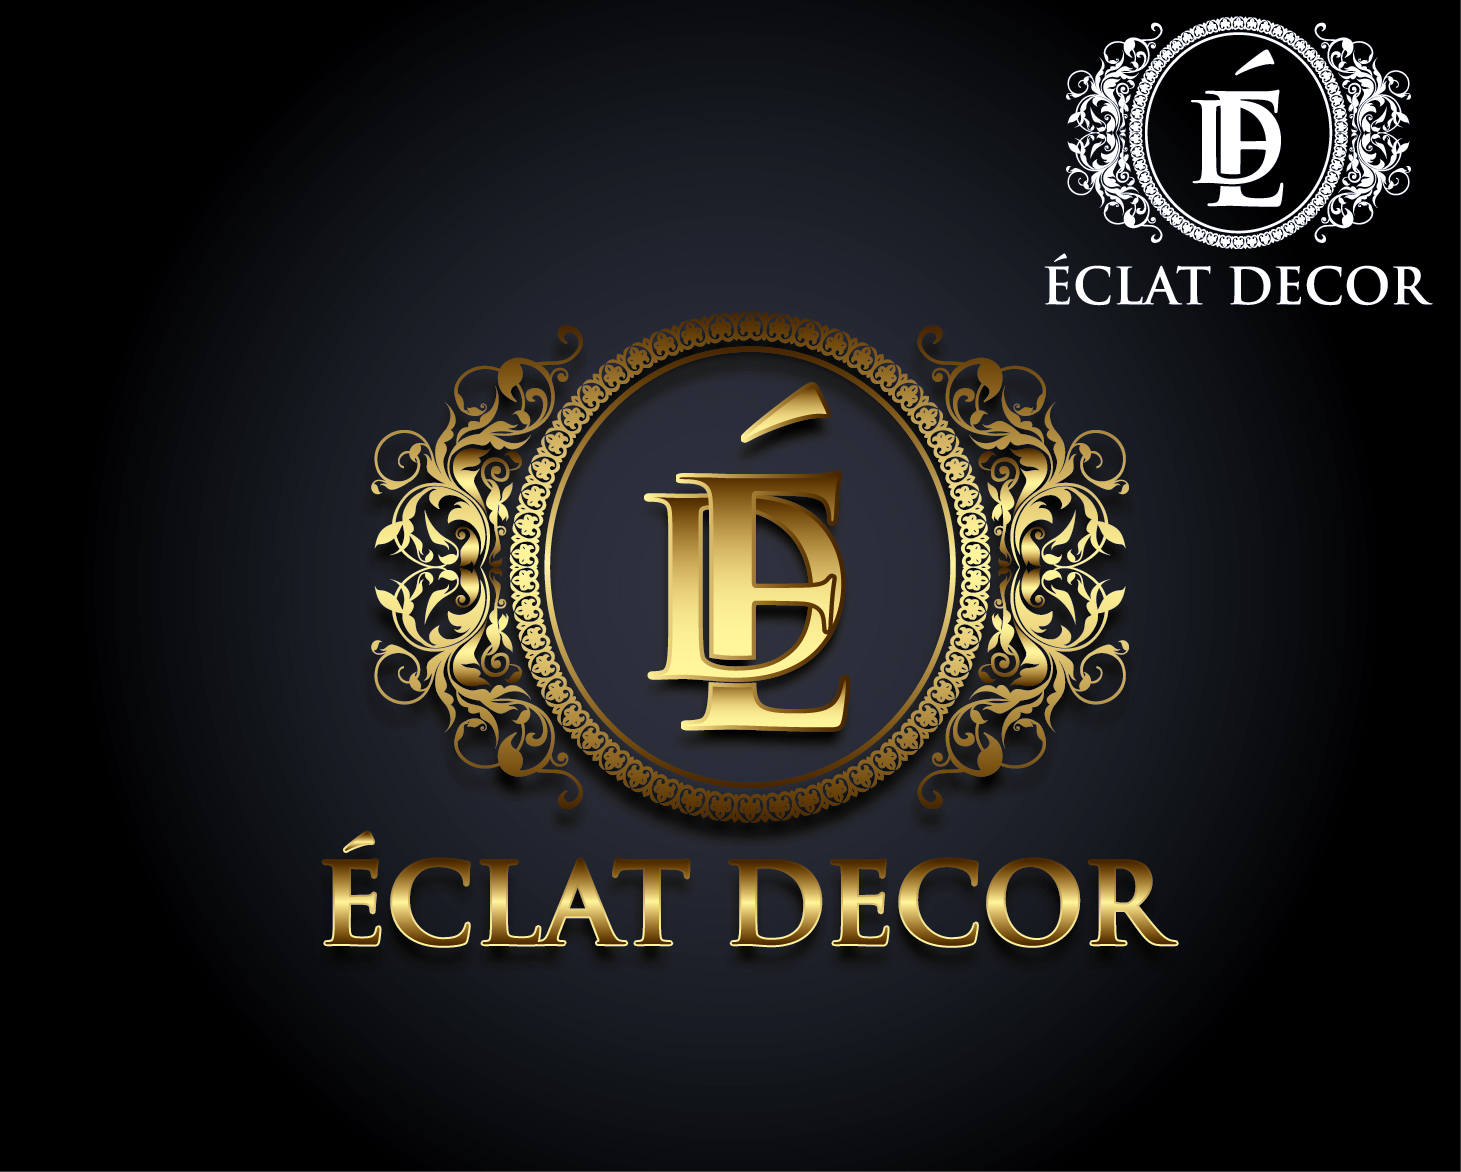 Logo Design by VENTSISLAV KOVACHEV - Entry No. 51 in the Logo Design Contest Imaginative Logo Design for Éclat Decor.